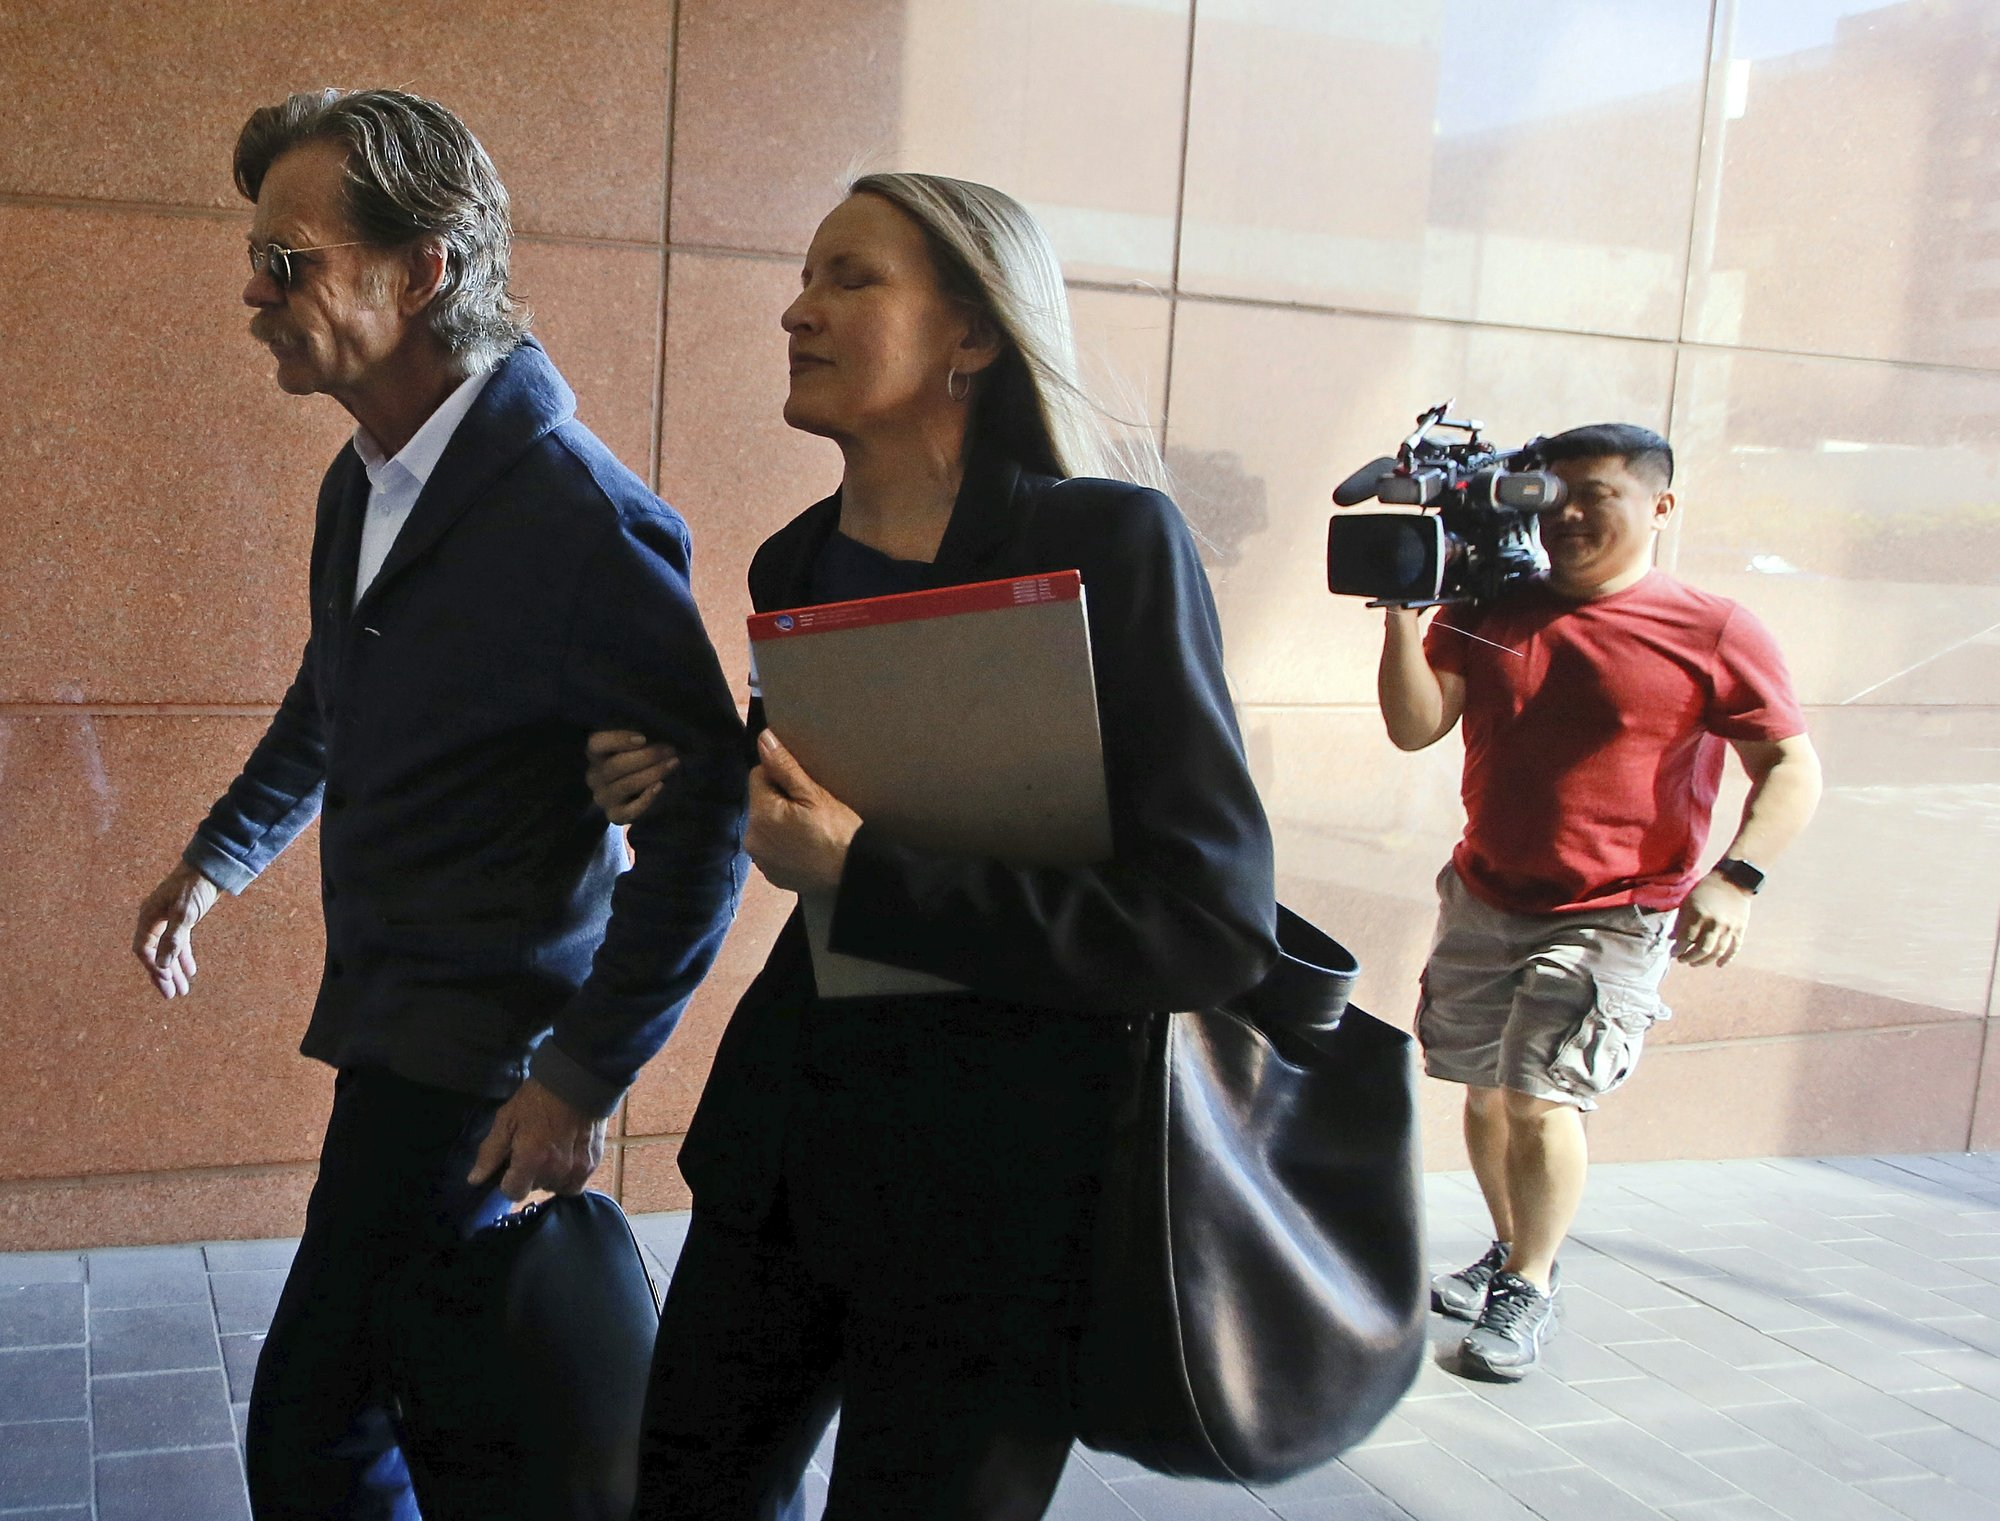 Felicity Huffman, Lori Loughlin Among Dozens Charged In Nationwide College Admissions Scheme